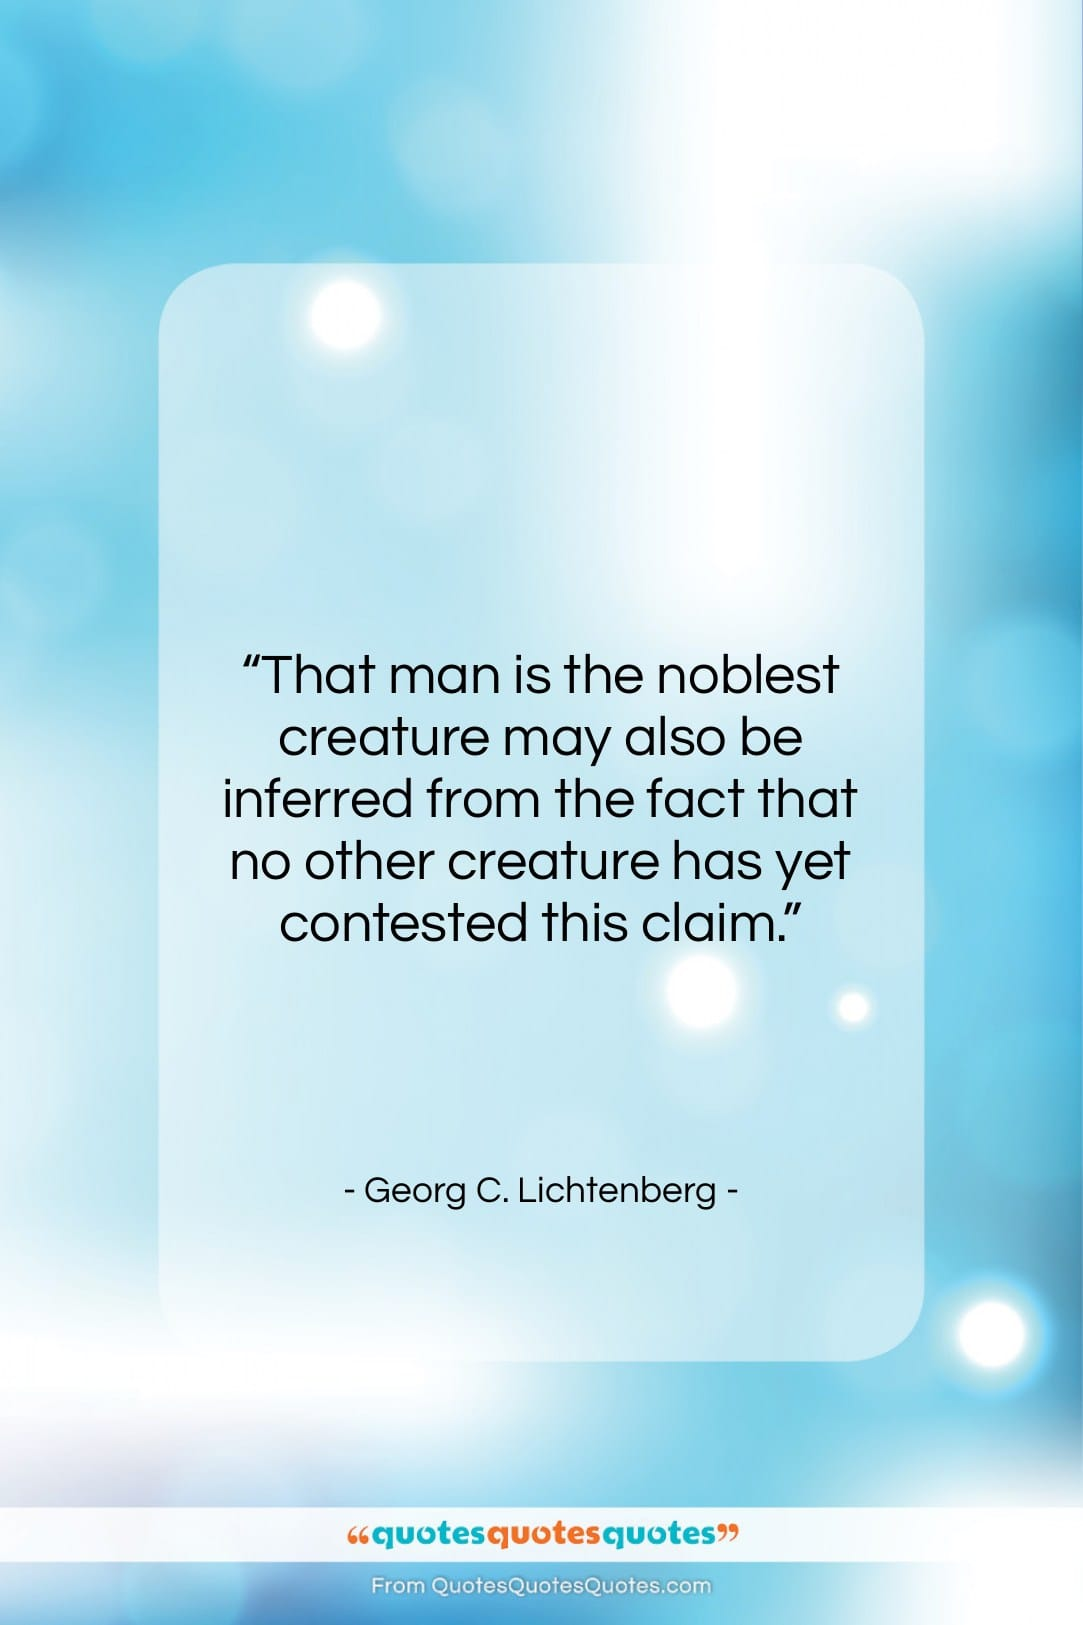 """Georg C. Lichtenberg quote: """"That man is the noblest creature may…""""- at QuotesQuotesQuotes.com"""